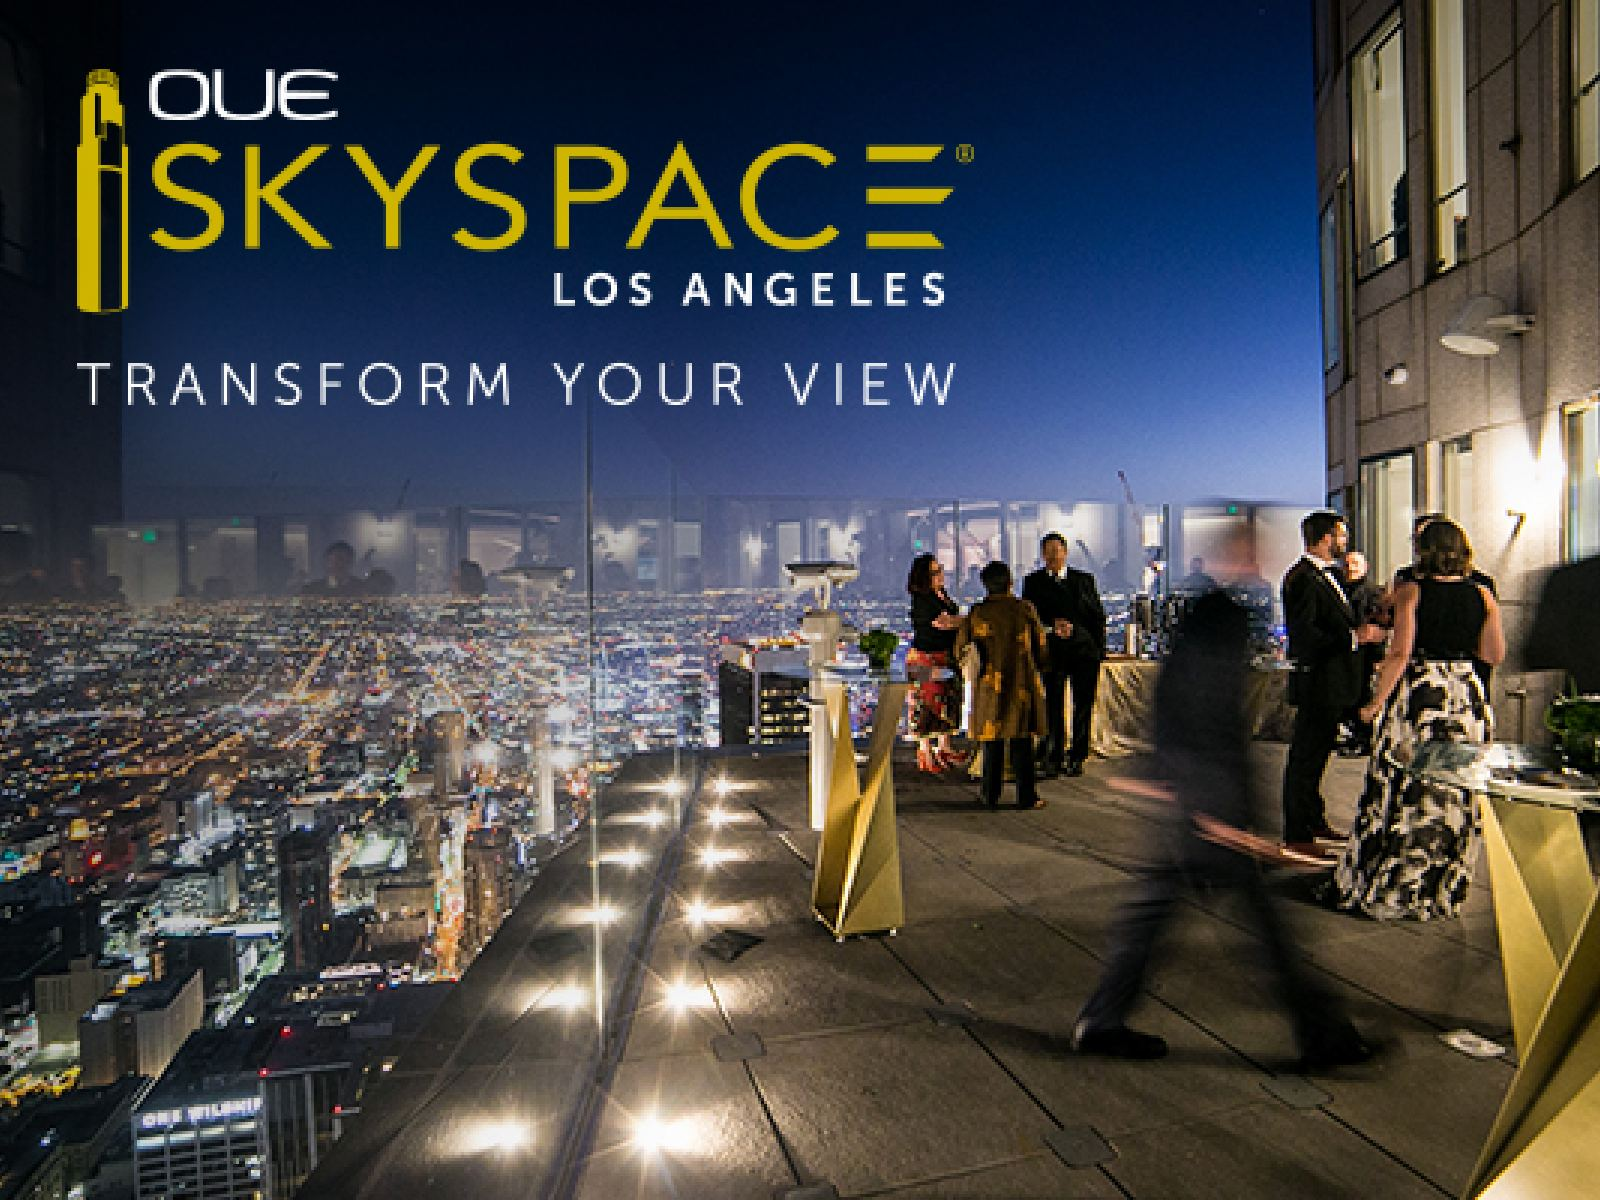 Discover Oue Skyspace Discover Los Angeles